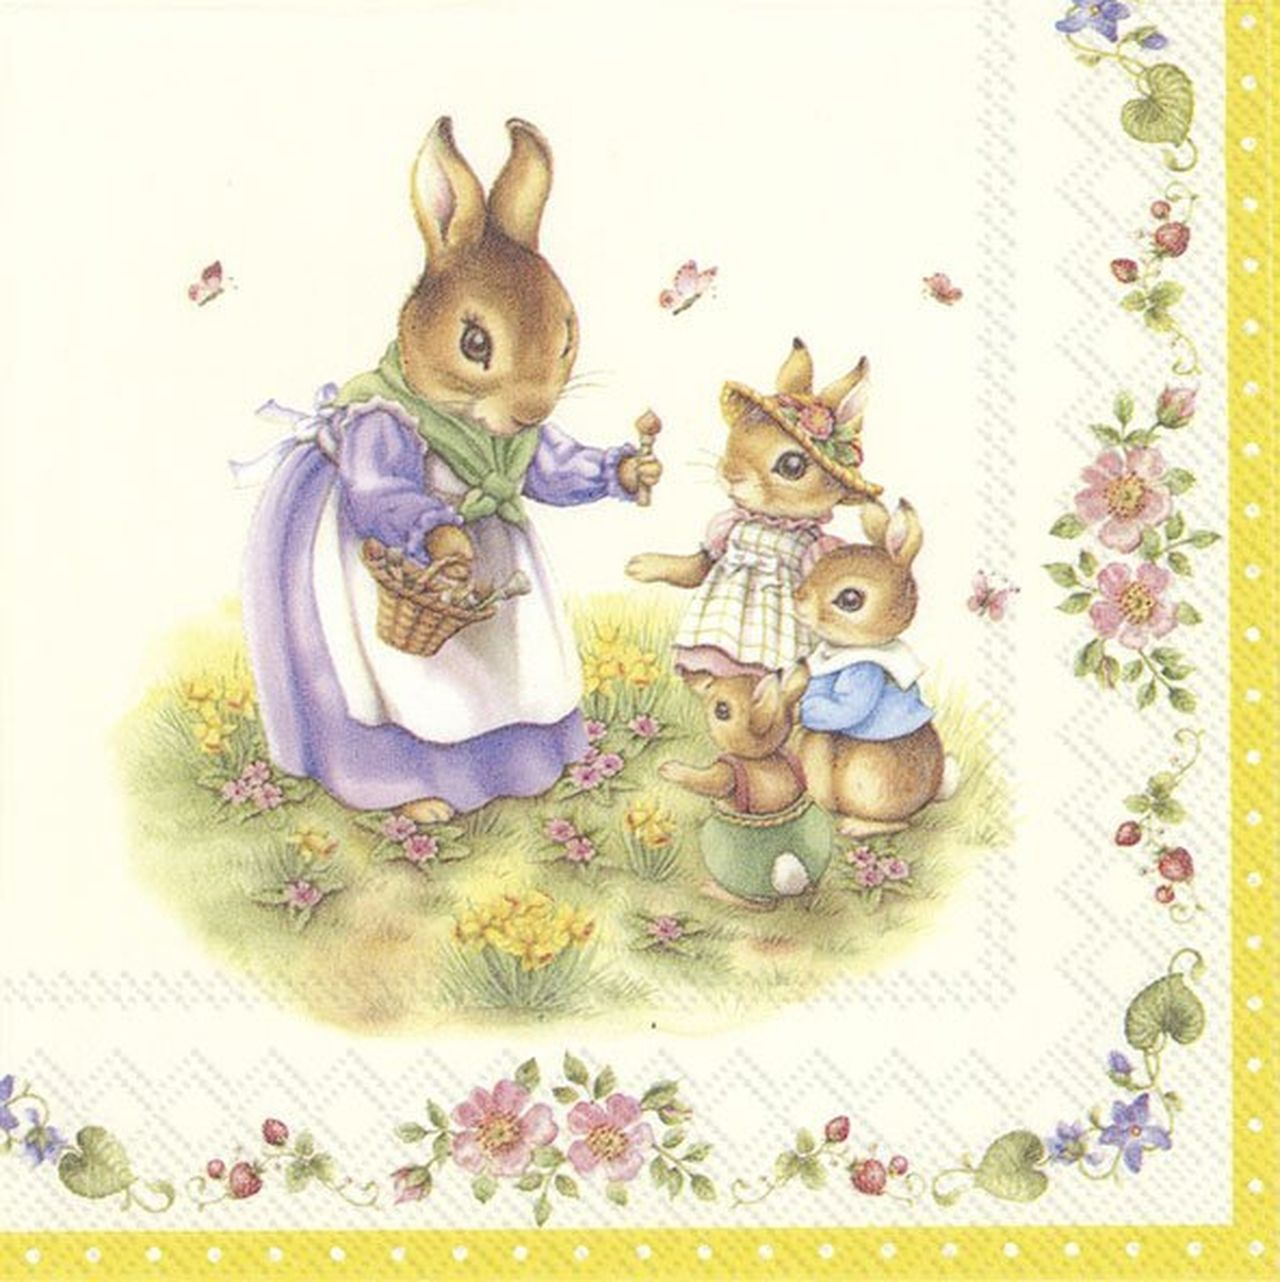 4 Lunch Paper Napkins for Decoupage Party Table Vintage Bunnies Rabbits